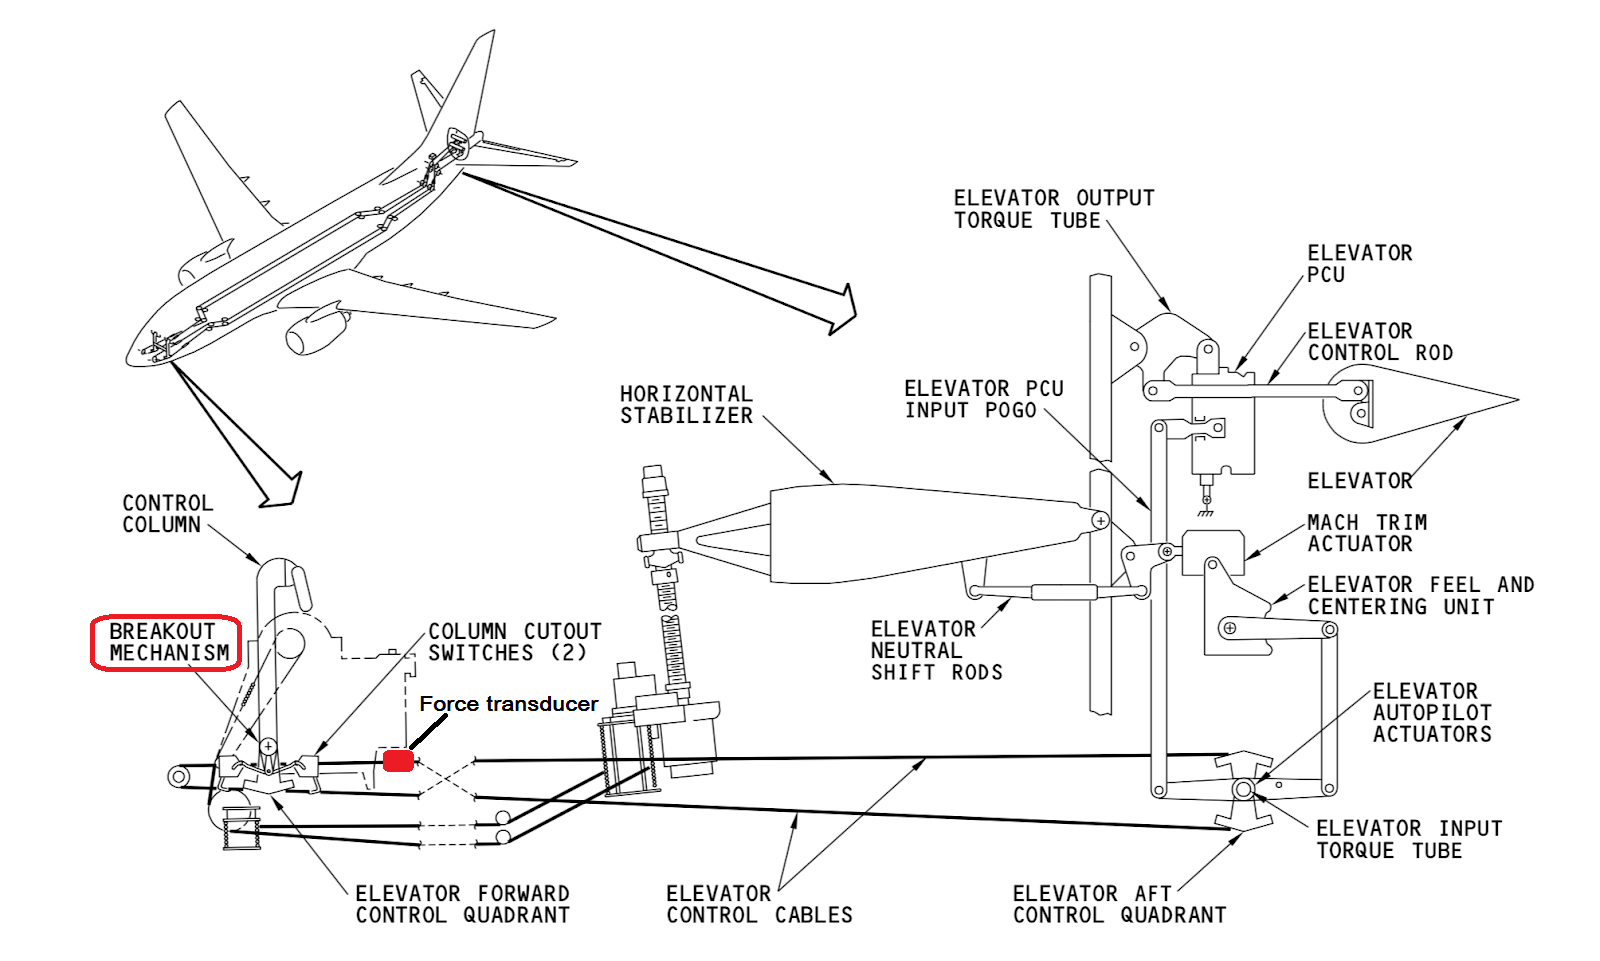 Indonesian Authorities Release Preliminary Lion Air Crash Report Wiring Diagram Manual Airbus The Pitch Control Of 737 Elevator And Stabilizer Trim Source Systems